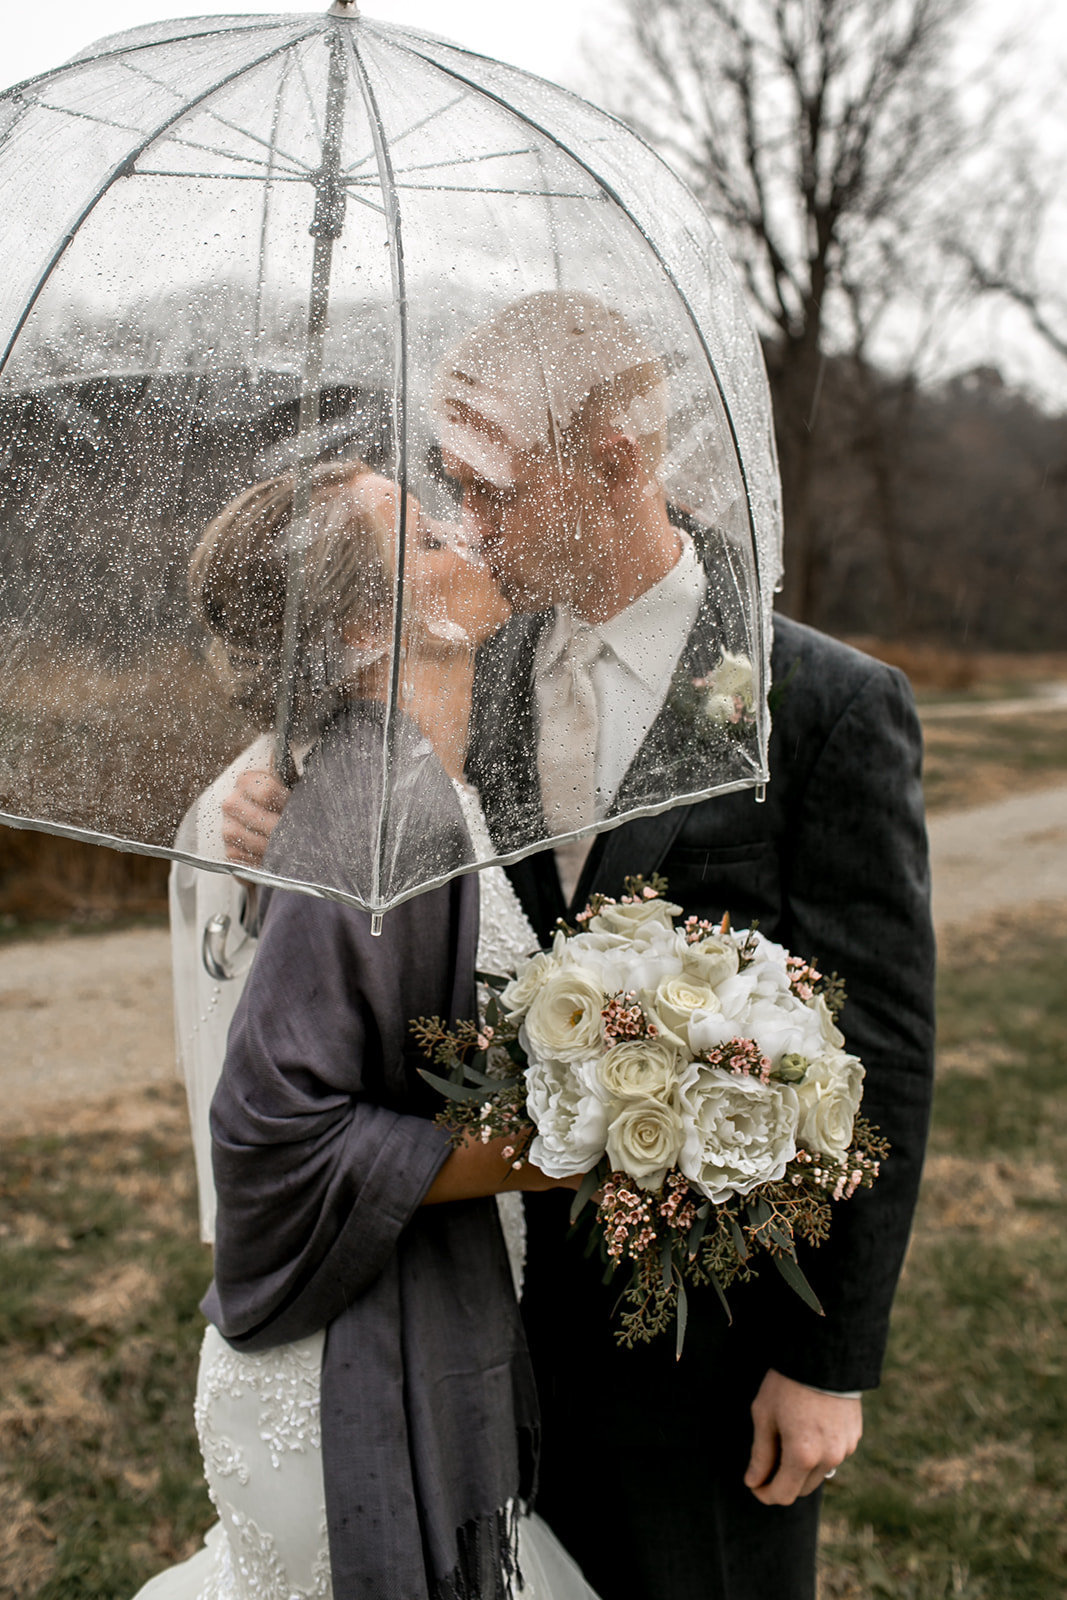 Des Moines Iowa wedding couple kissing together under an umbrella in the rain.